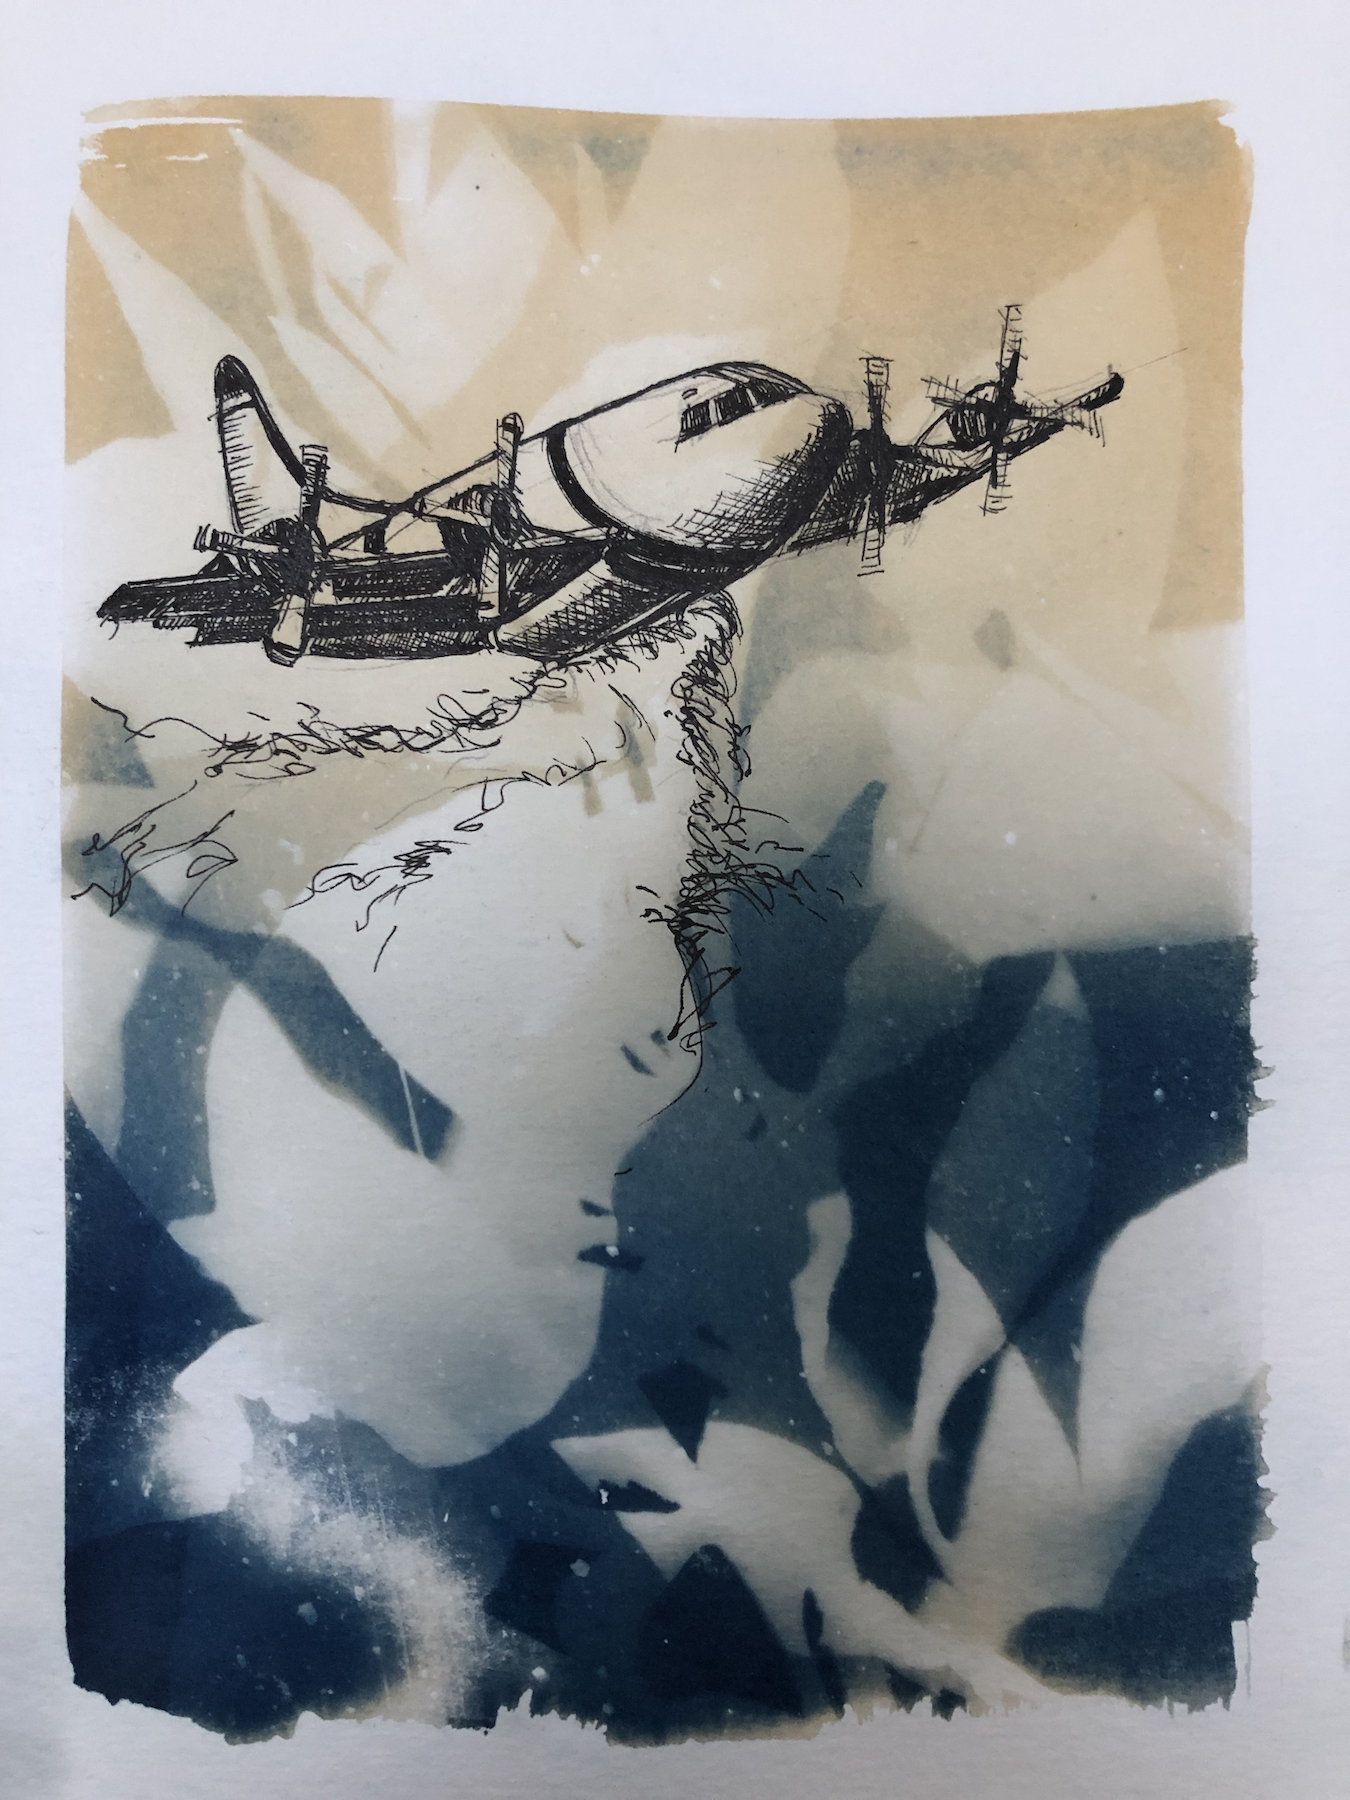 Marie Craig,  Entanglement 4 (fireplane),  pen and ink on toned cyanotype photograph, 6 x 8 inches.